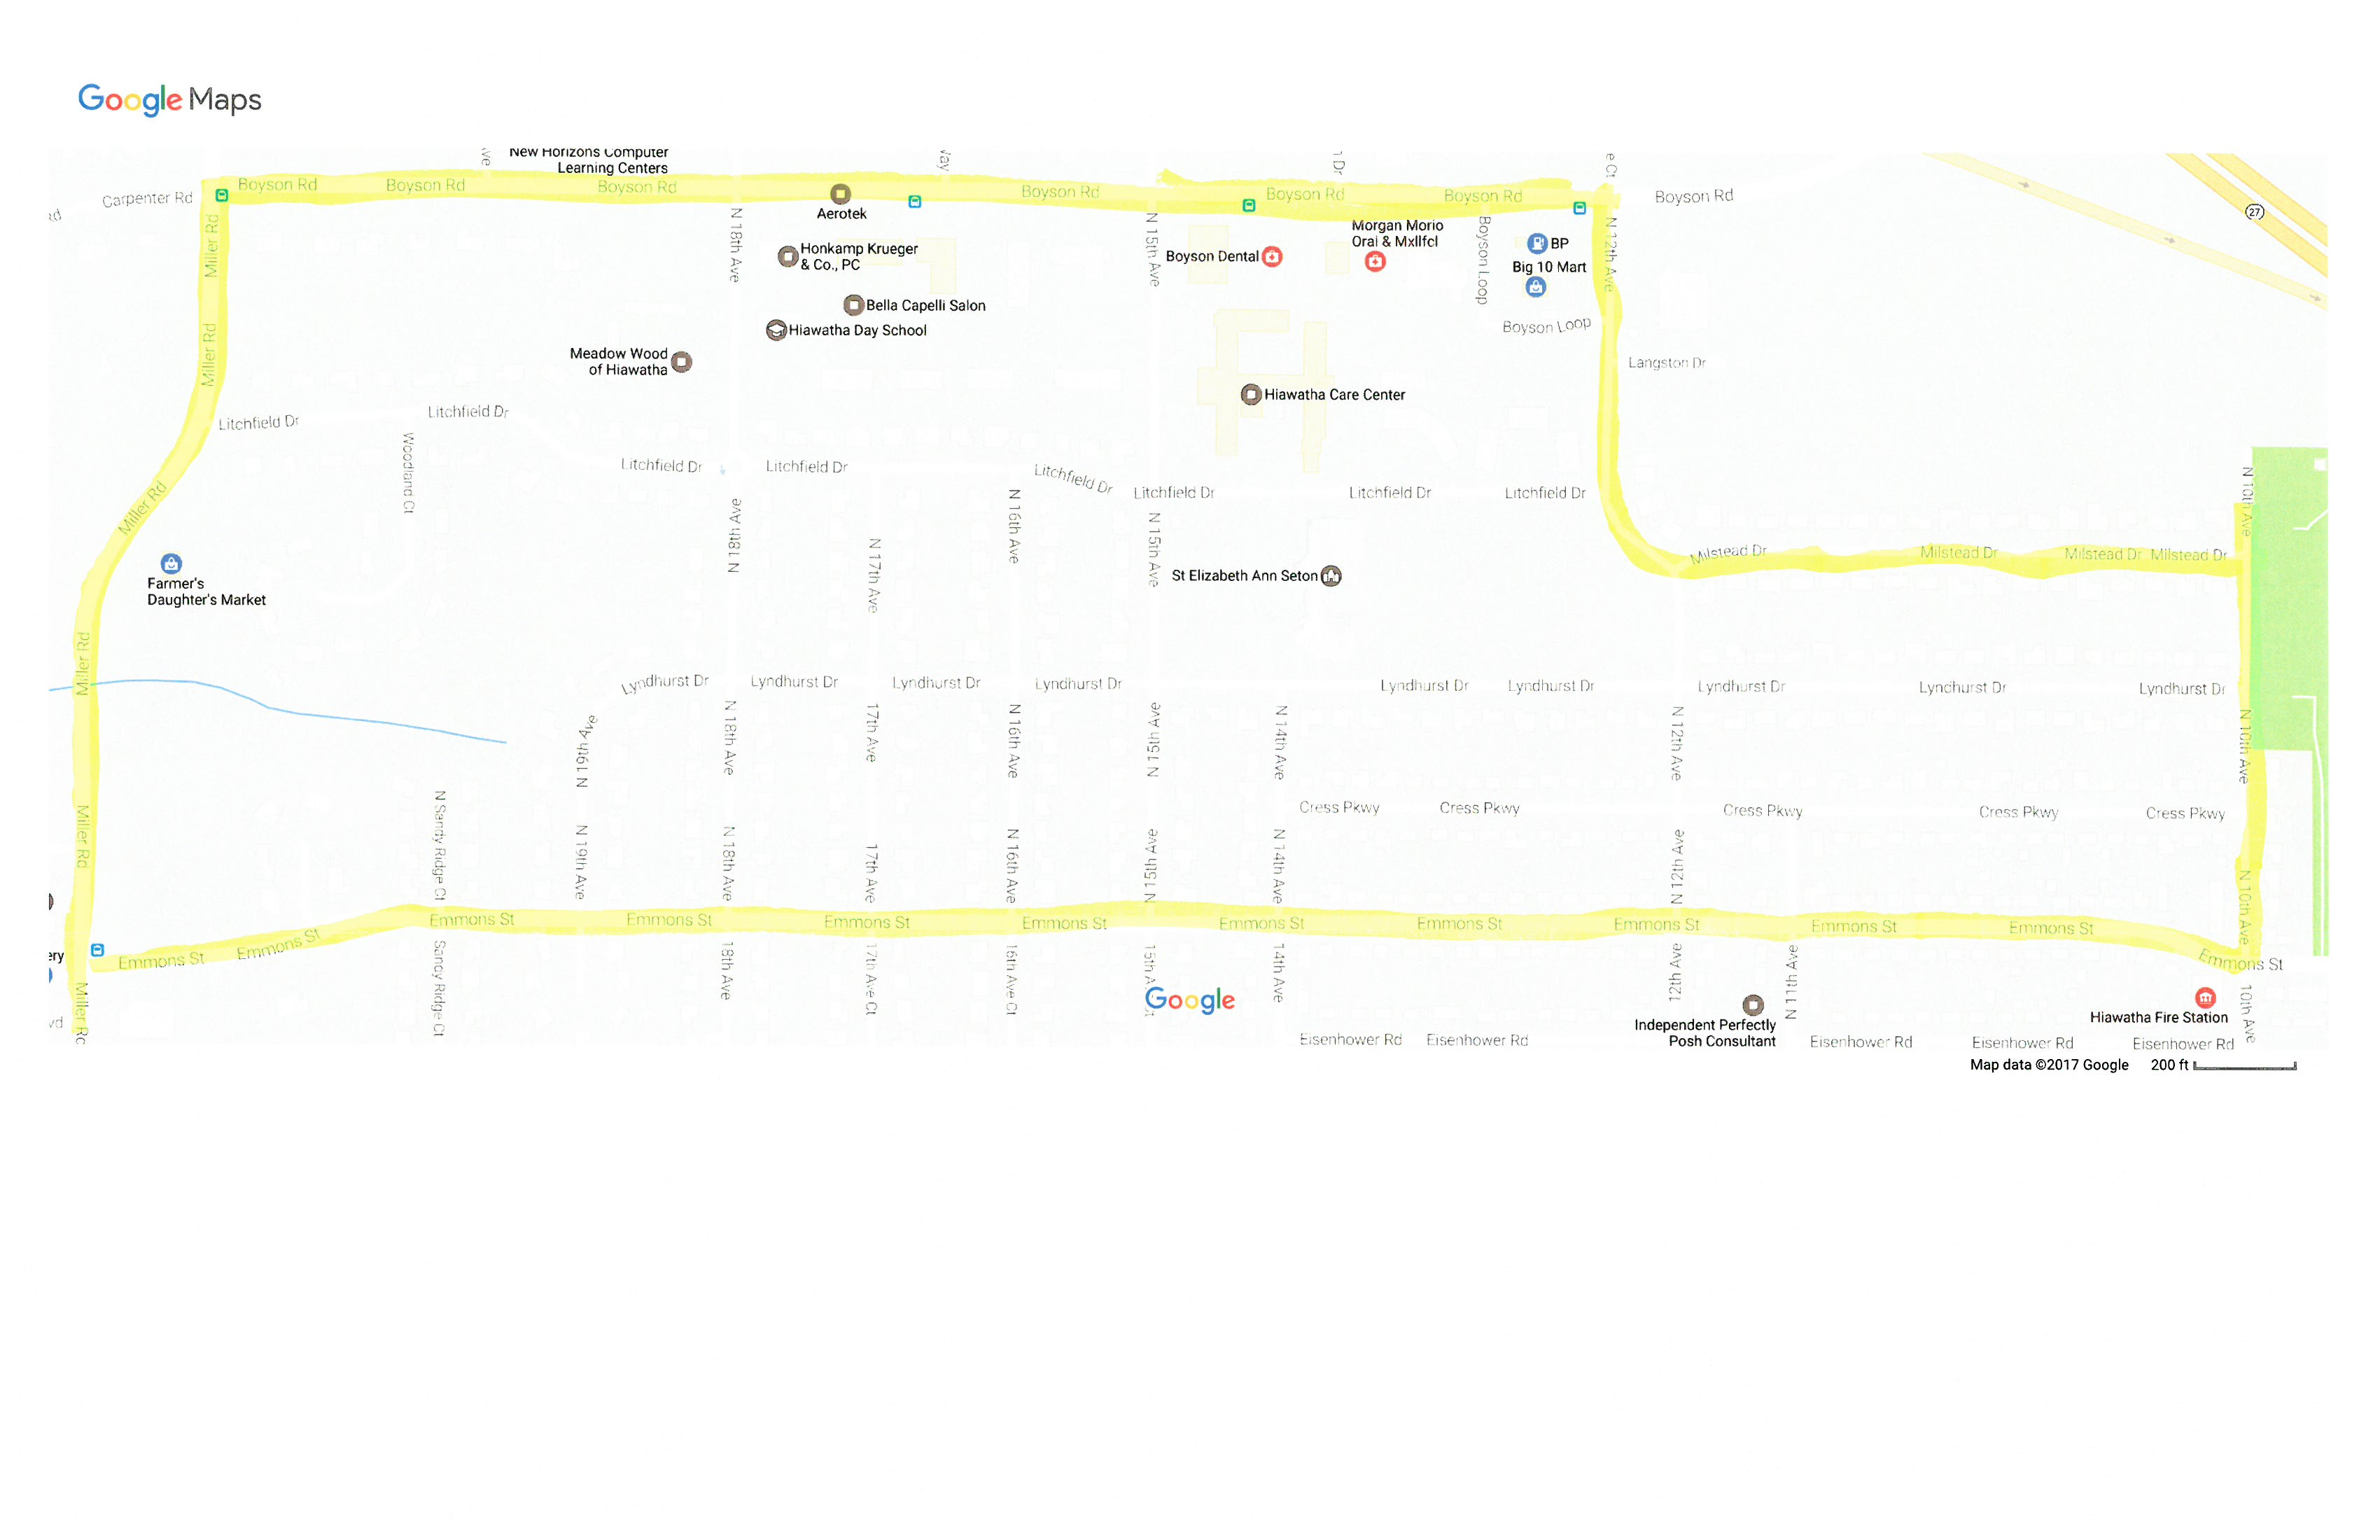 2017 sidewalk assessment map 2